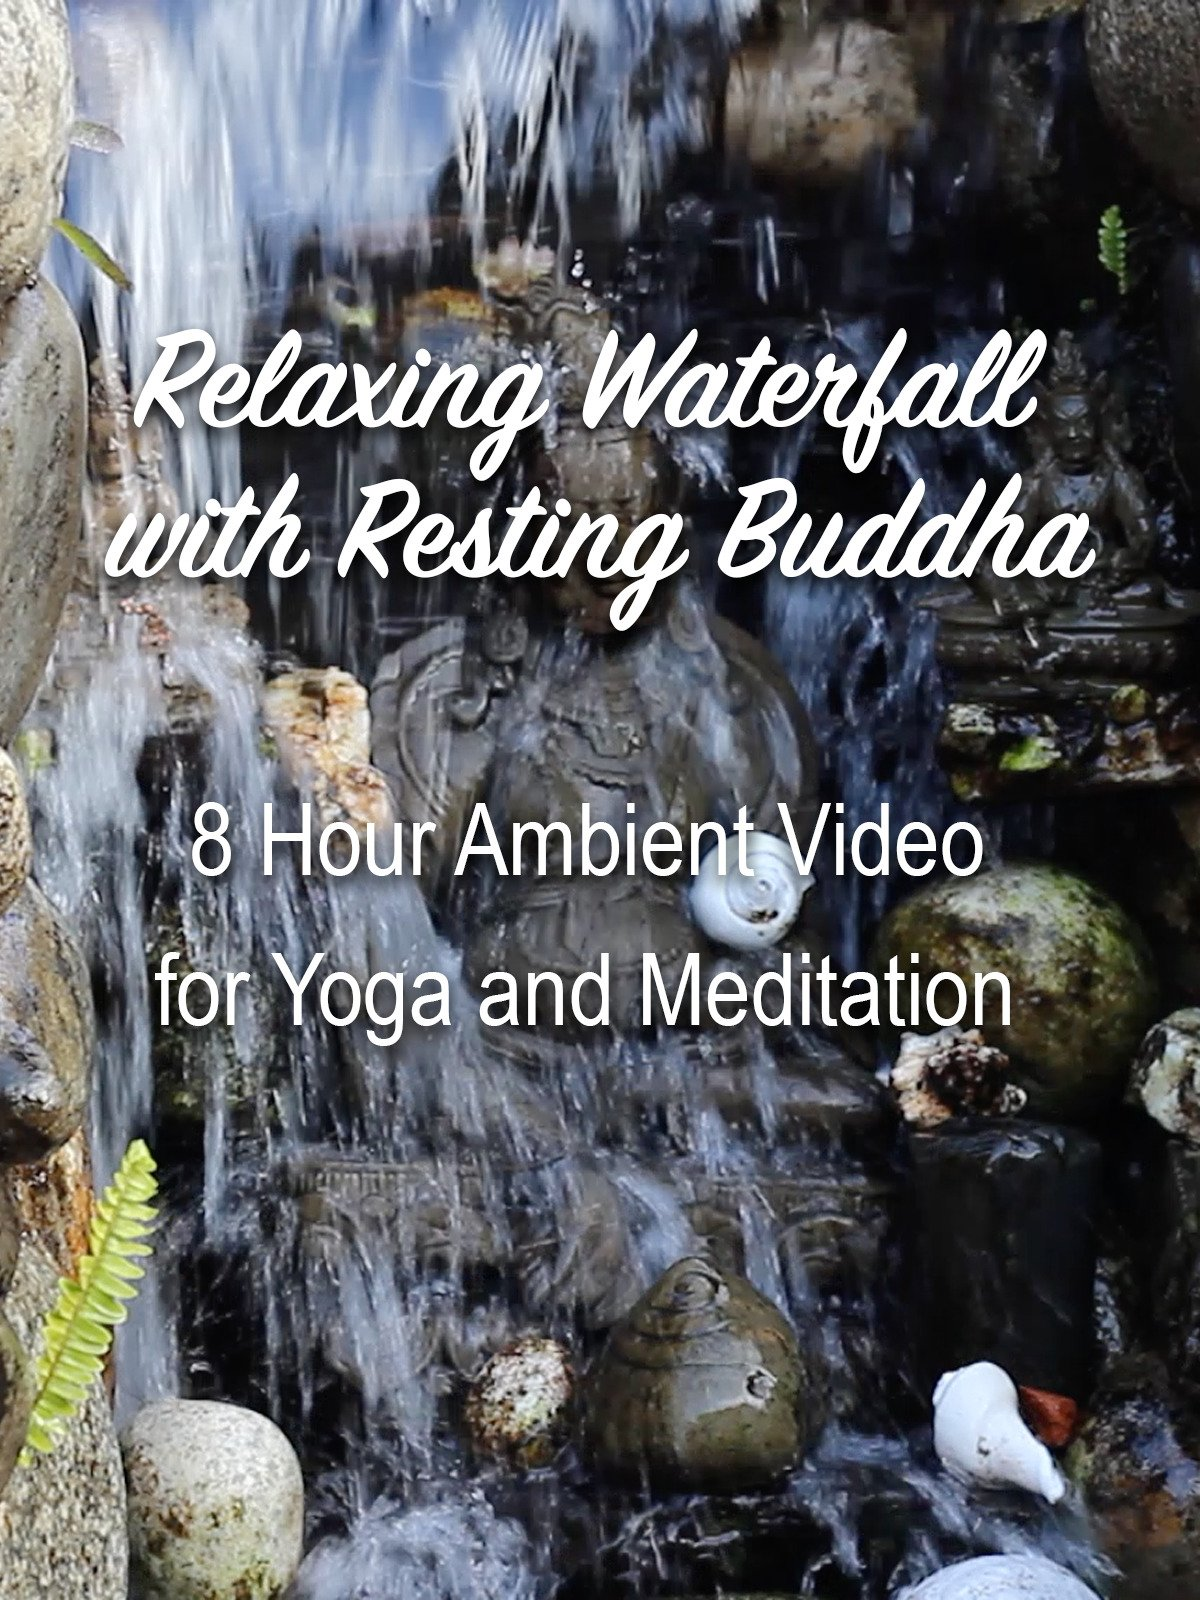 Relaxing Waterfall with Resting Buddha 8 Hour Ambient Video for Yoga and Meditation